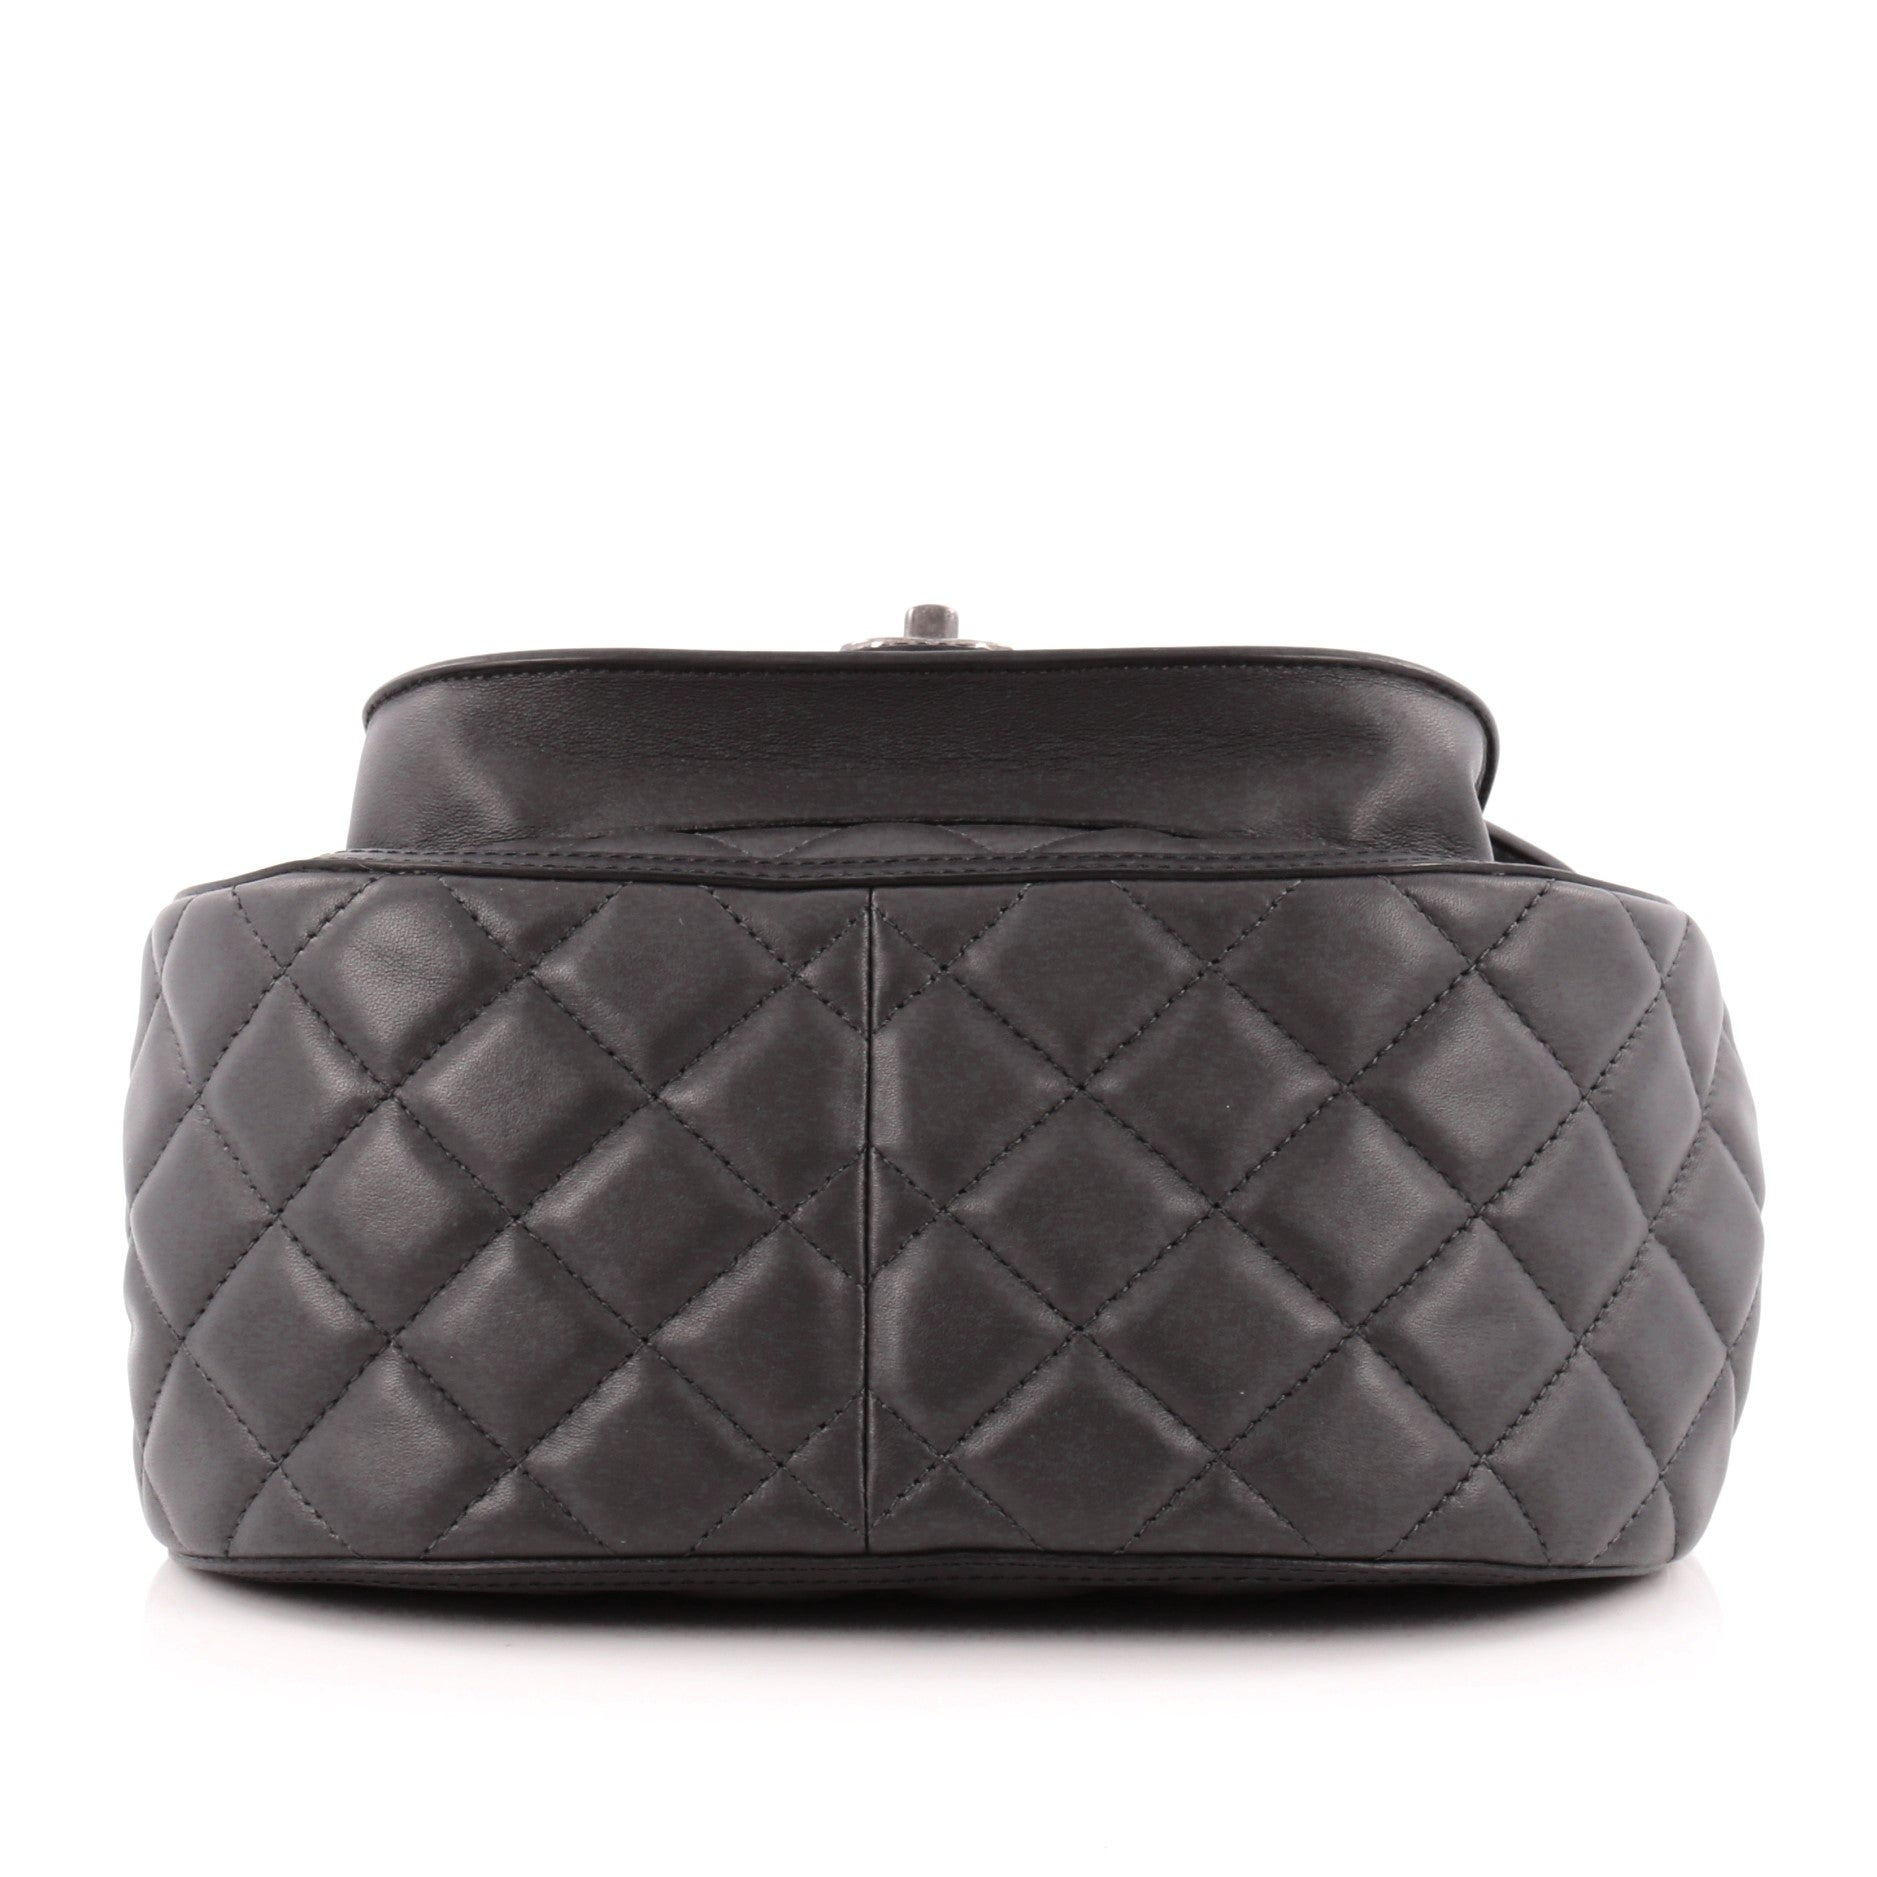 762109fcc3a1 Chanel Saddle Bag Quilted Calfskin and Pony Hair Medium at 1stdibs